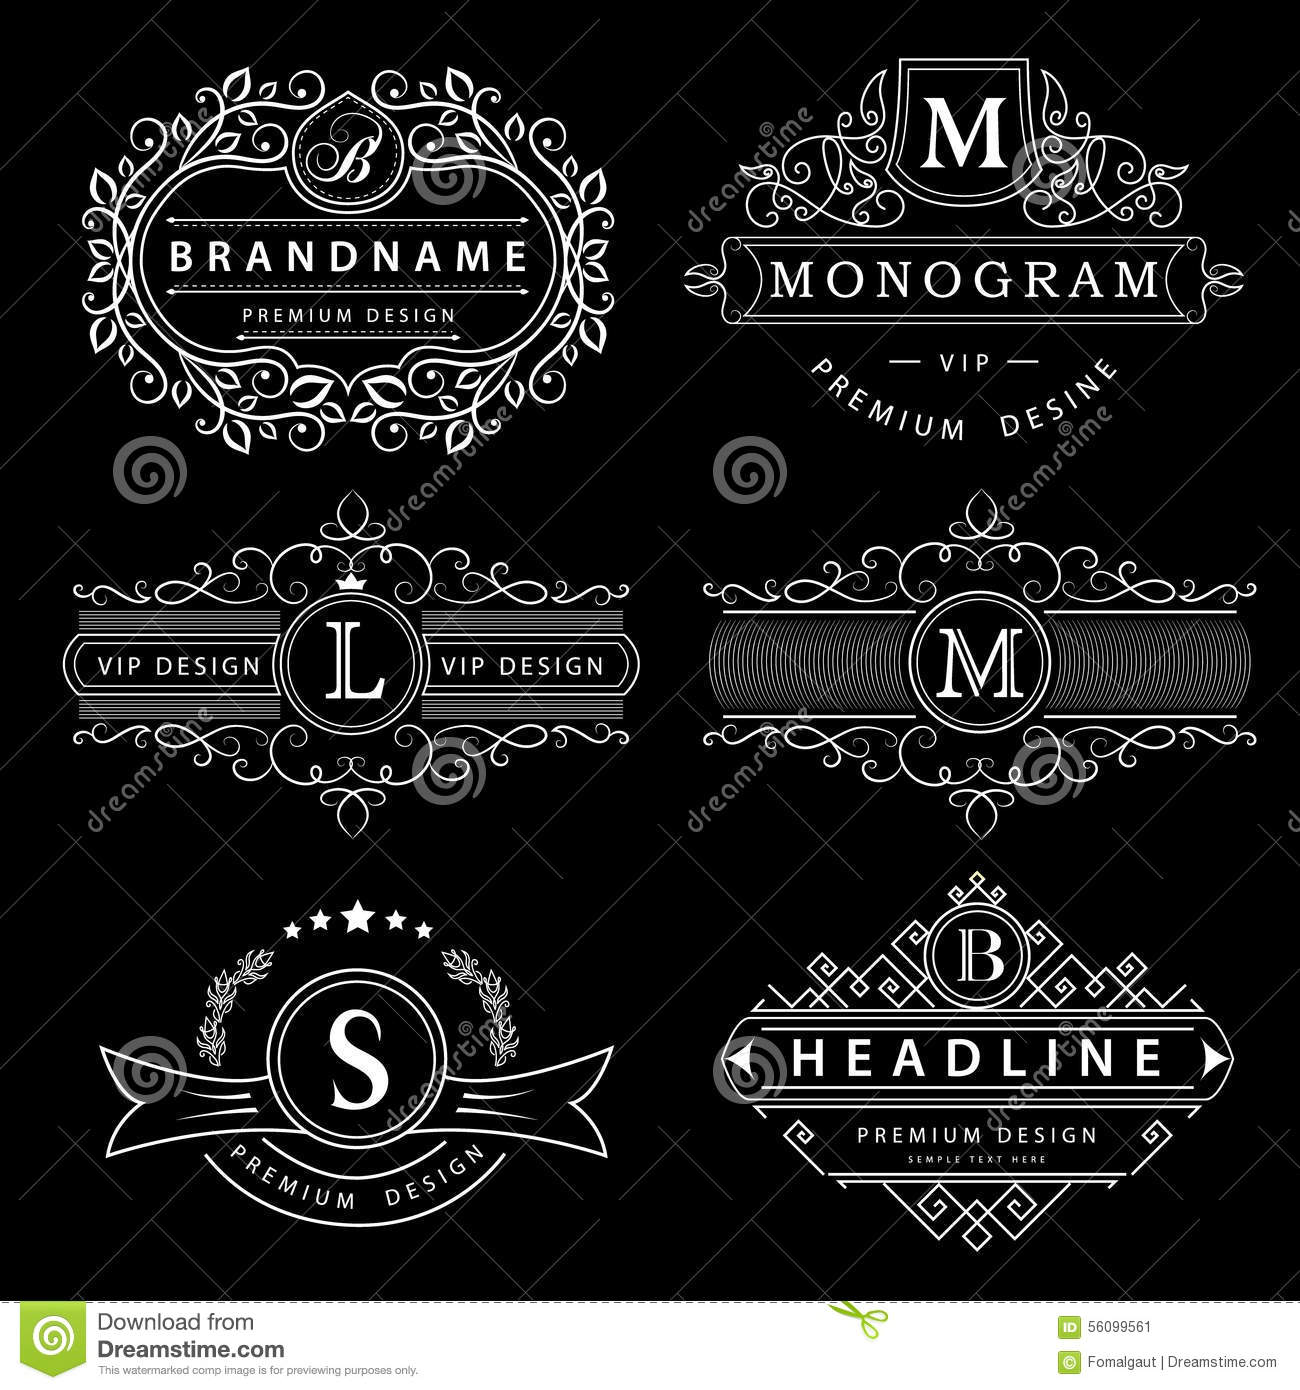 Monogram design elements graceful template elegant line art logo monogram design elements graceful template elegant line art logo design business sign identity for restaurant royalty boutiq illustration 56099561 friedricerecipe Choice Image